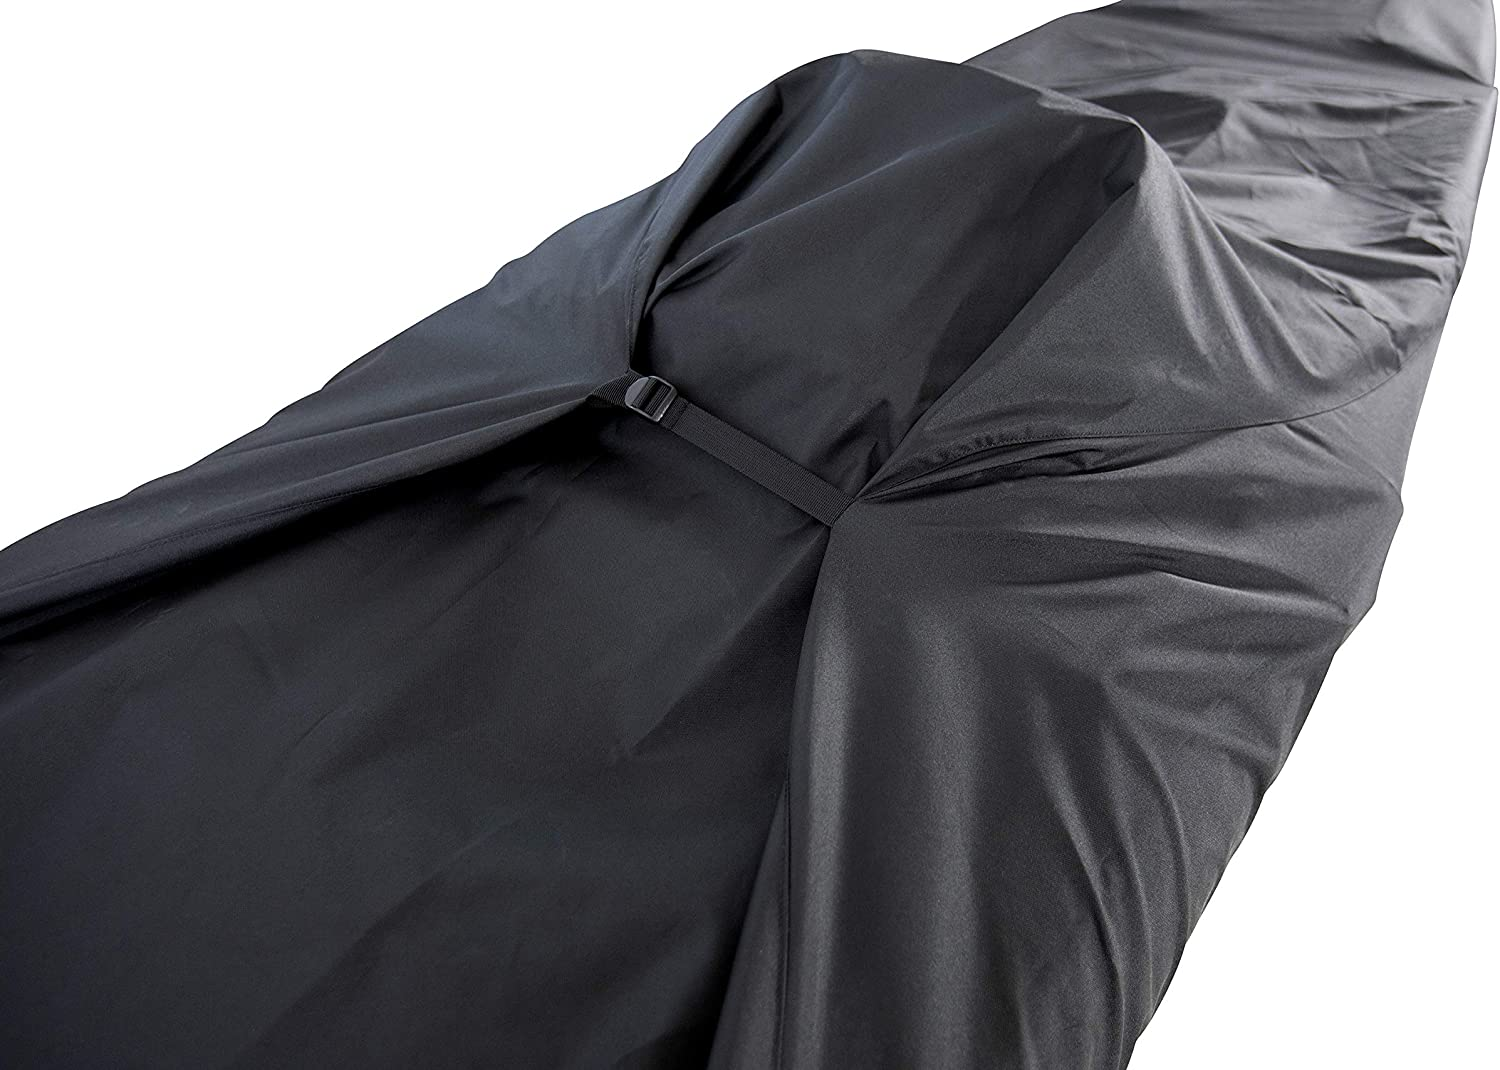 5 Sizes Wilderness Systems Kayak Cover 600 Denier for Indoor//Outdoor Storage Universal Fit for Sit On Top Kayaks 9-15 Feet